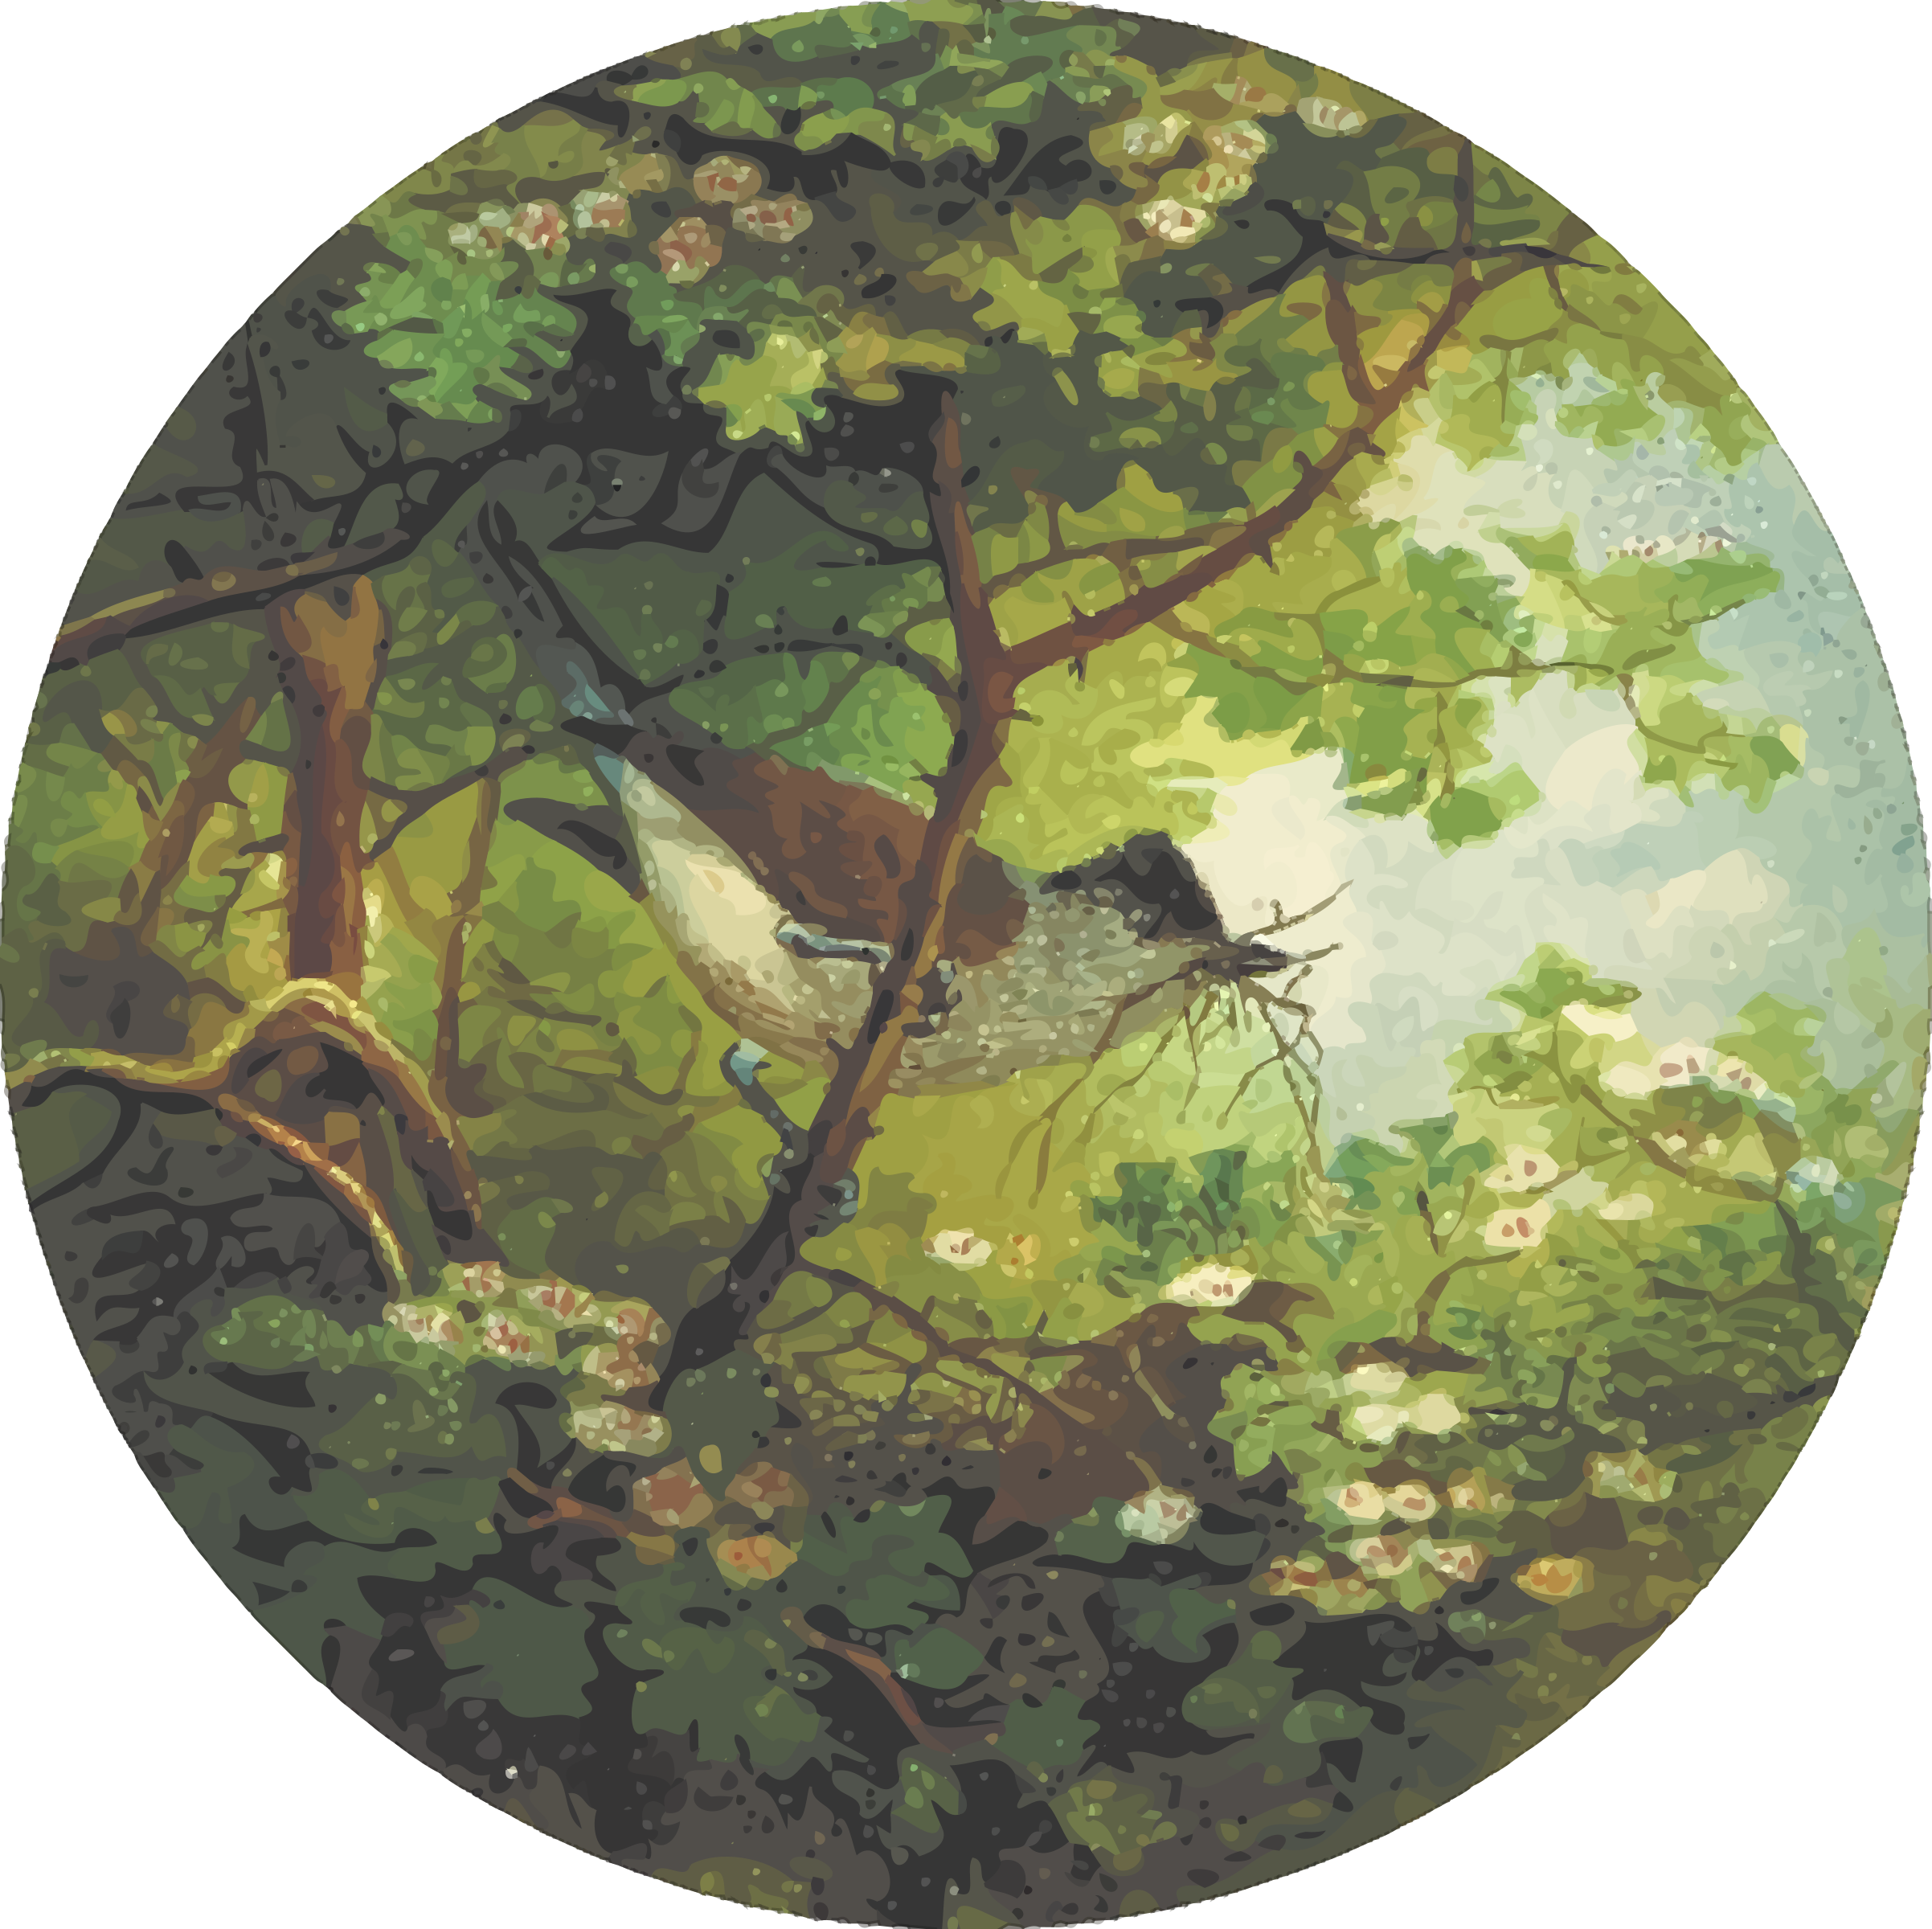 Circular blackcap drawing by Firkin